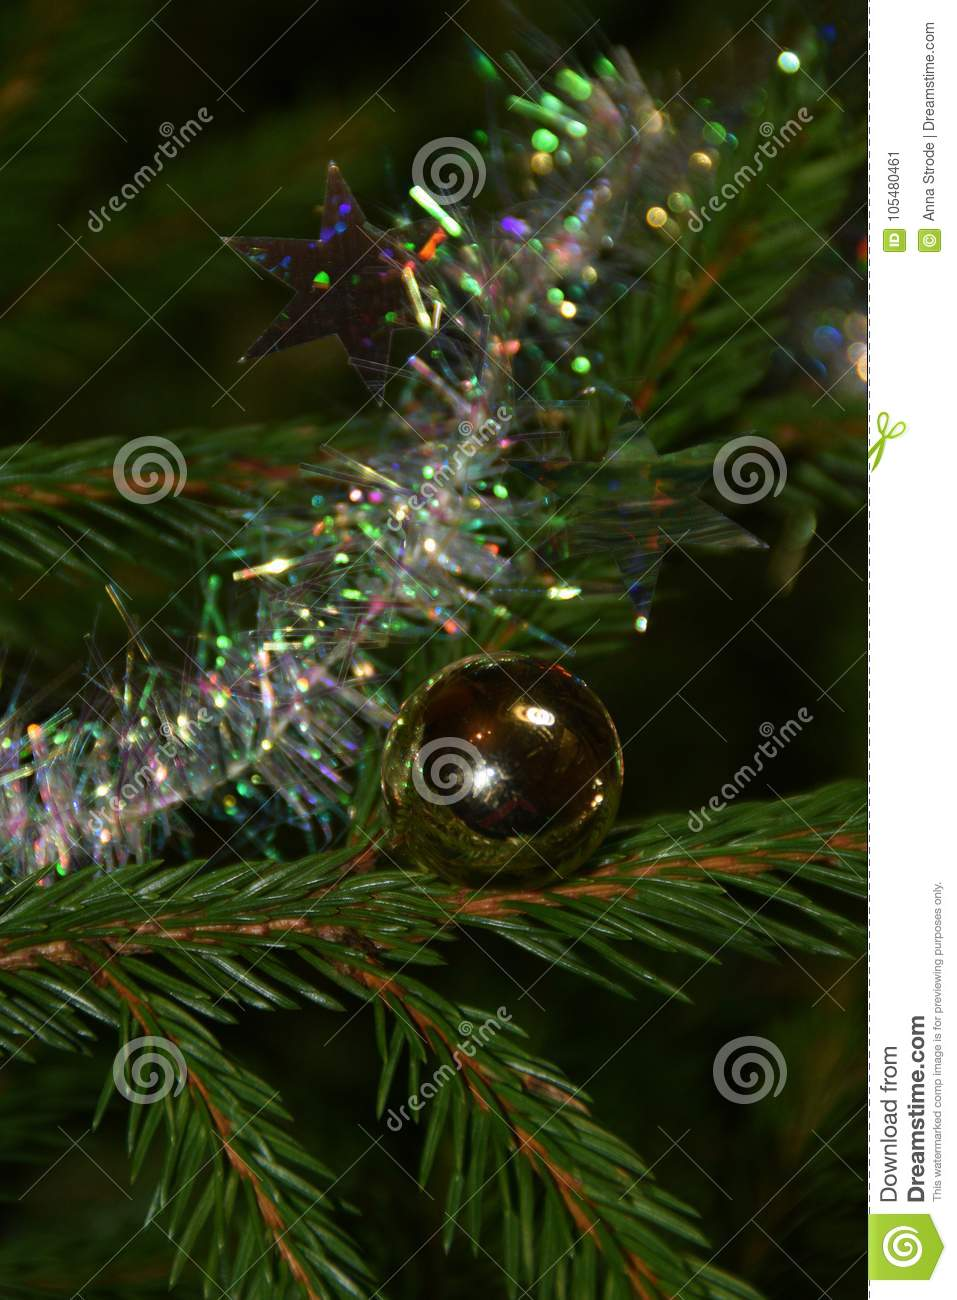 Christmas Tree Decorations On Fir Tree Branches. Stock Image - Image ...